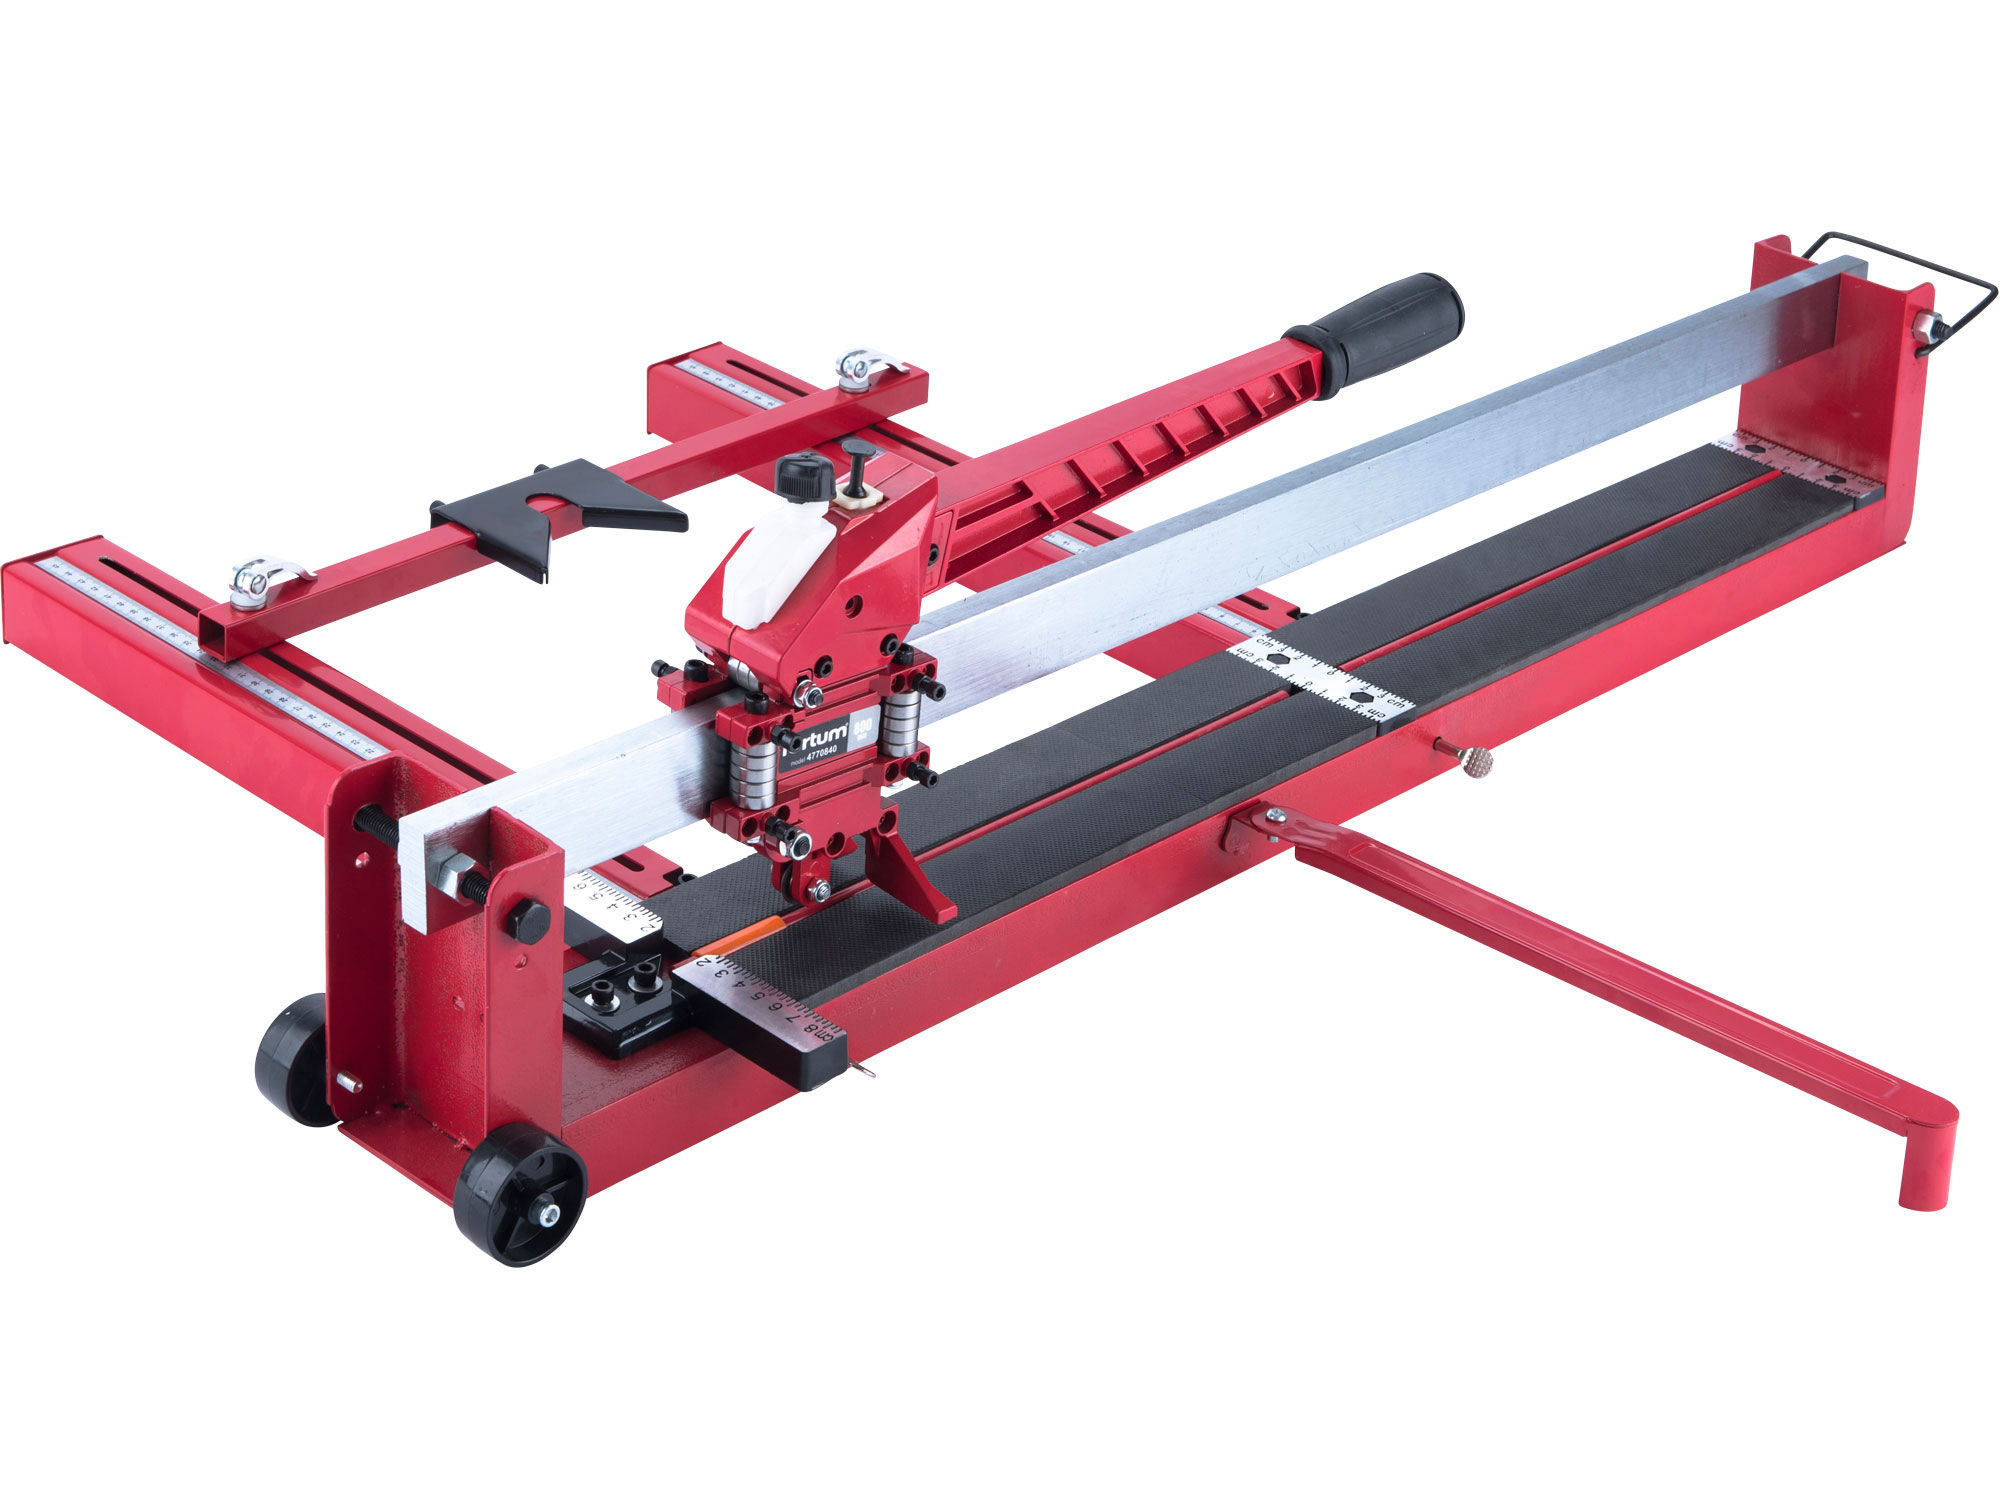 tile cutter 800mm (without laser) steel base-plate with side ruler, oil pump-tank and nylon wheels